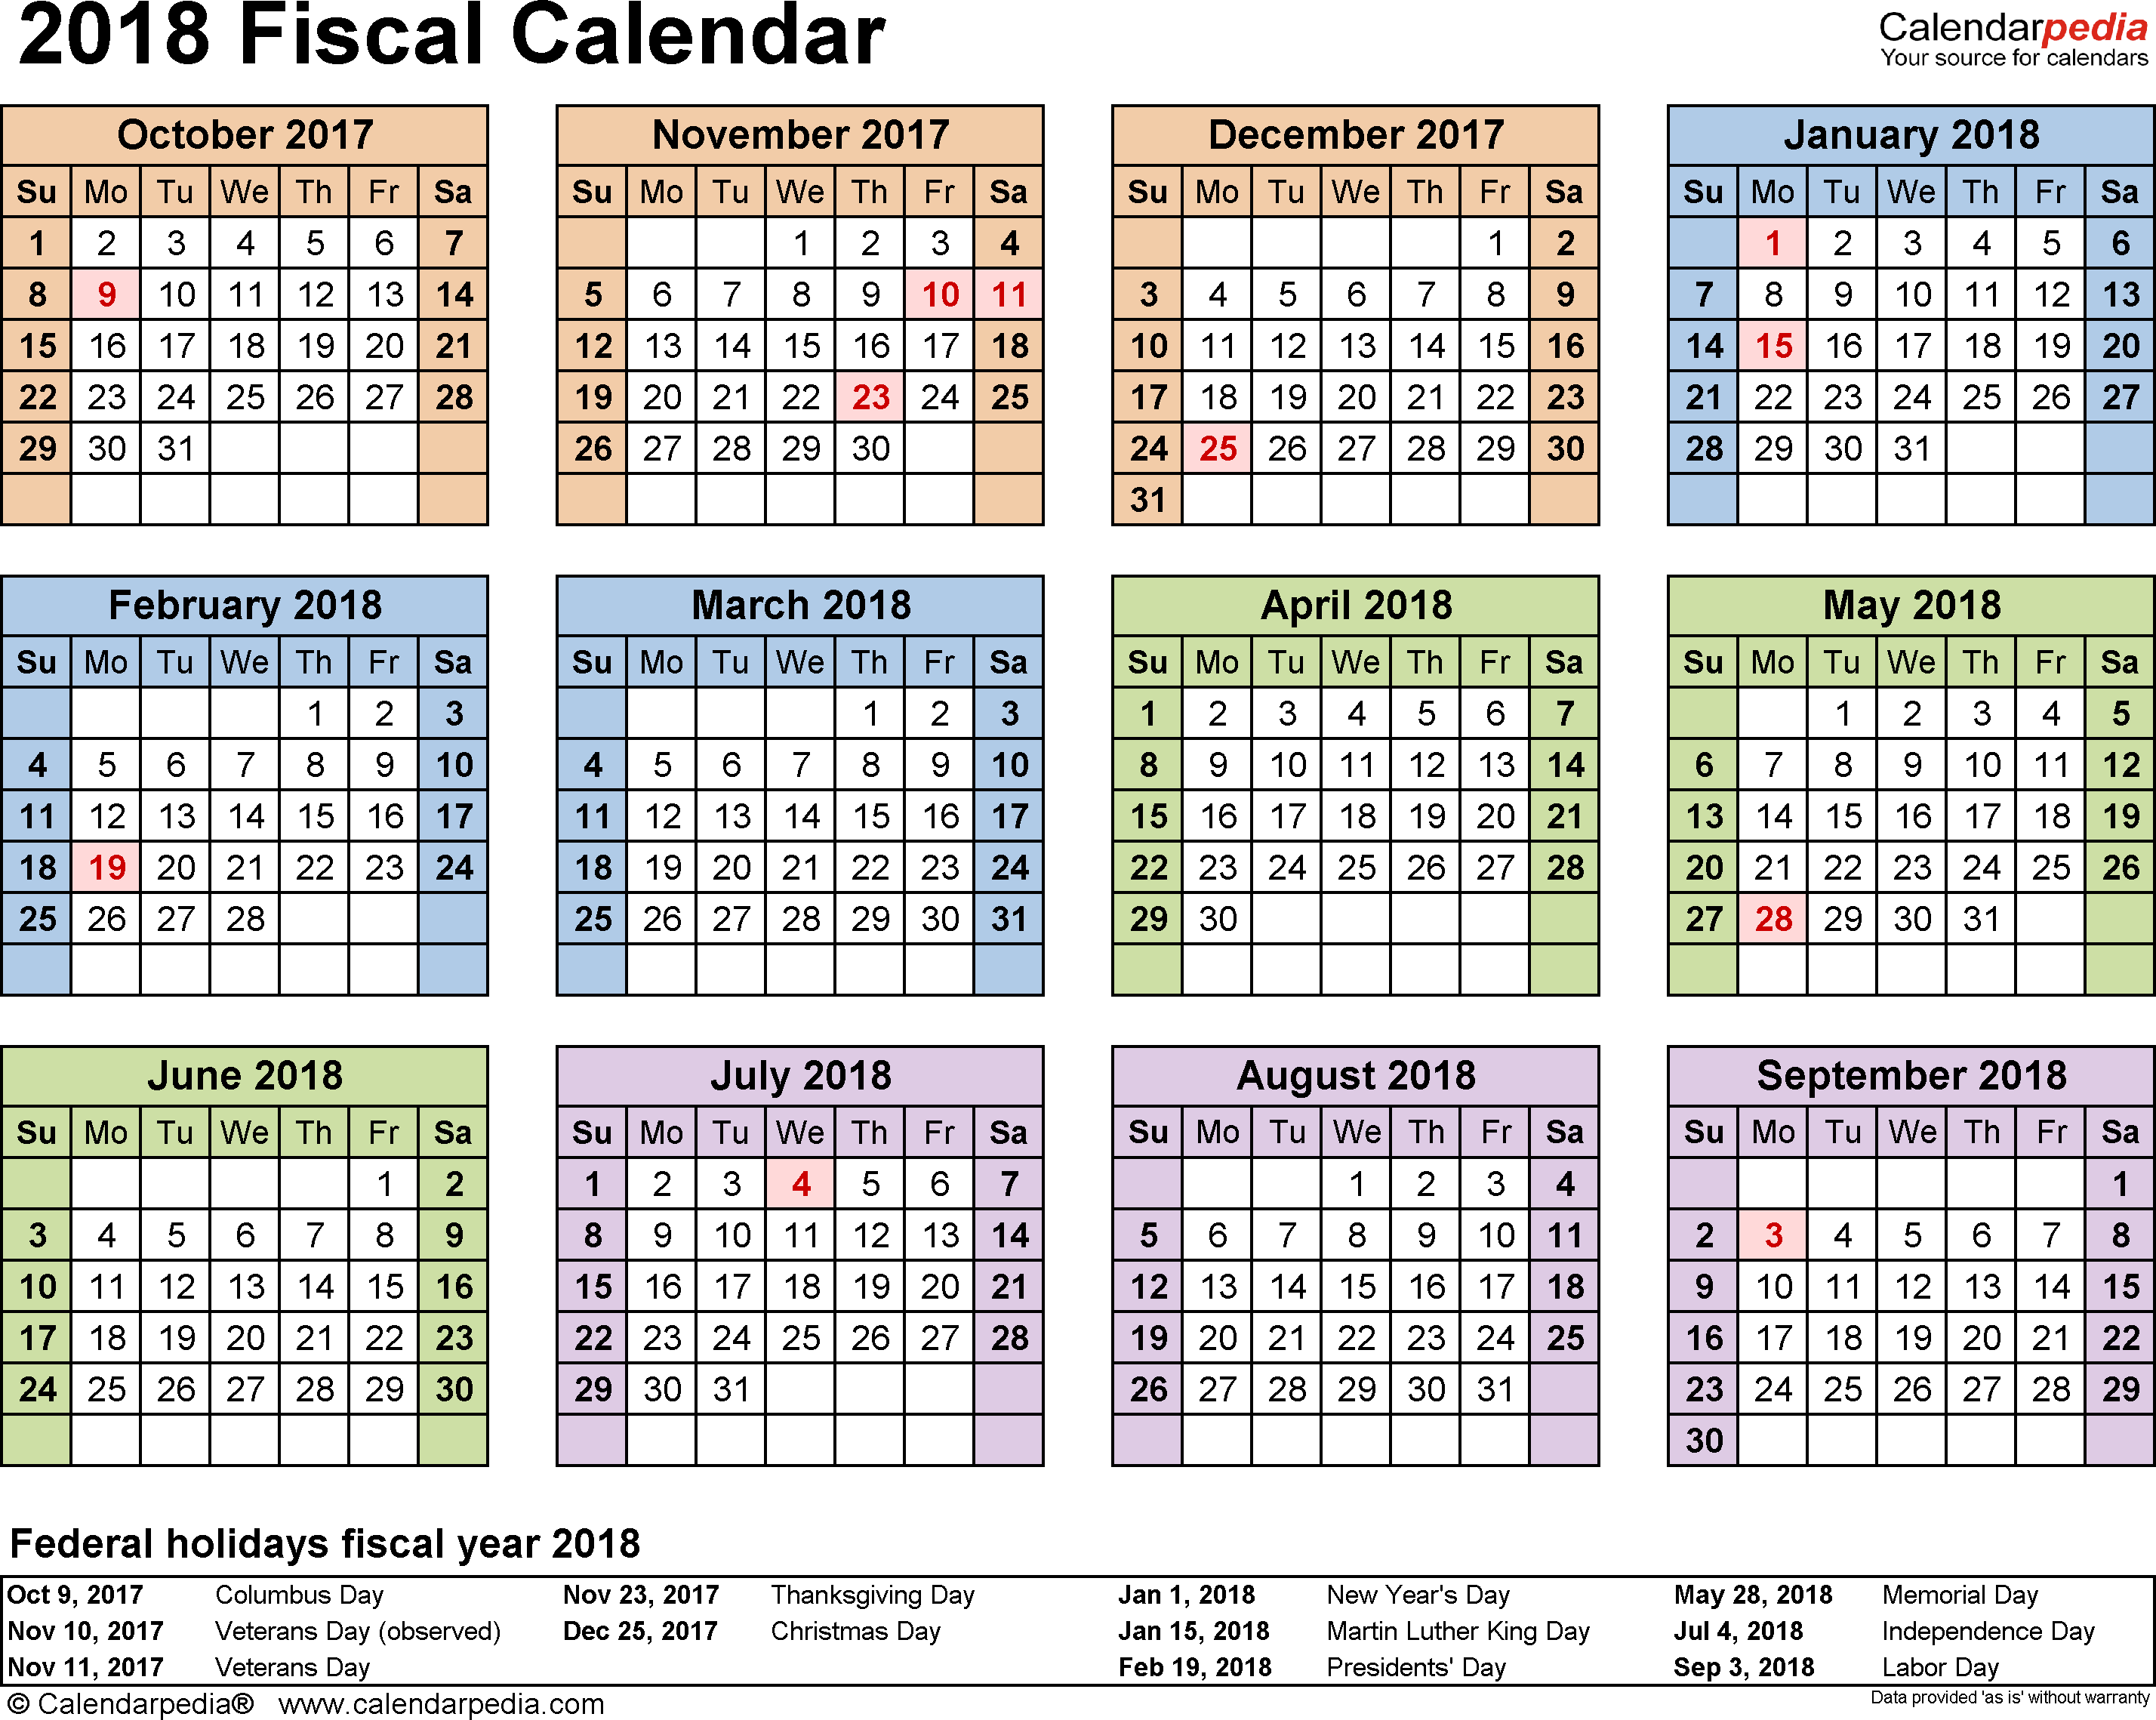 Download Template 4: Fiscal year calendar 2018 for Microsoft Word (.docx file), landscape, 1 page, year at a glance